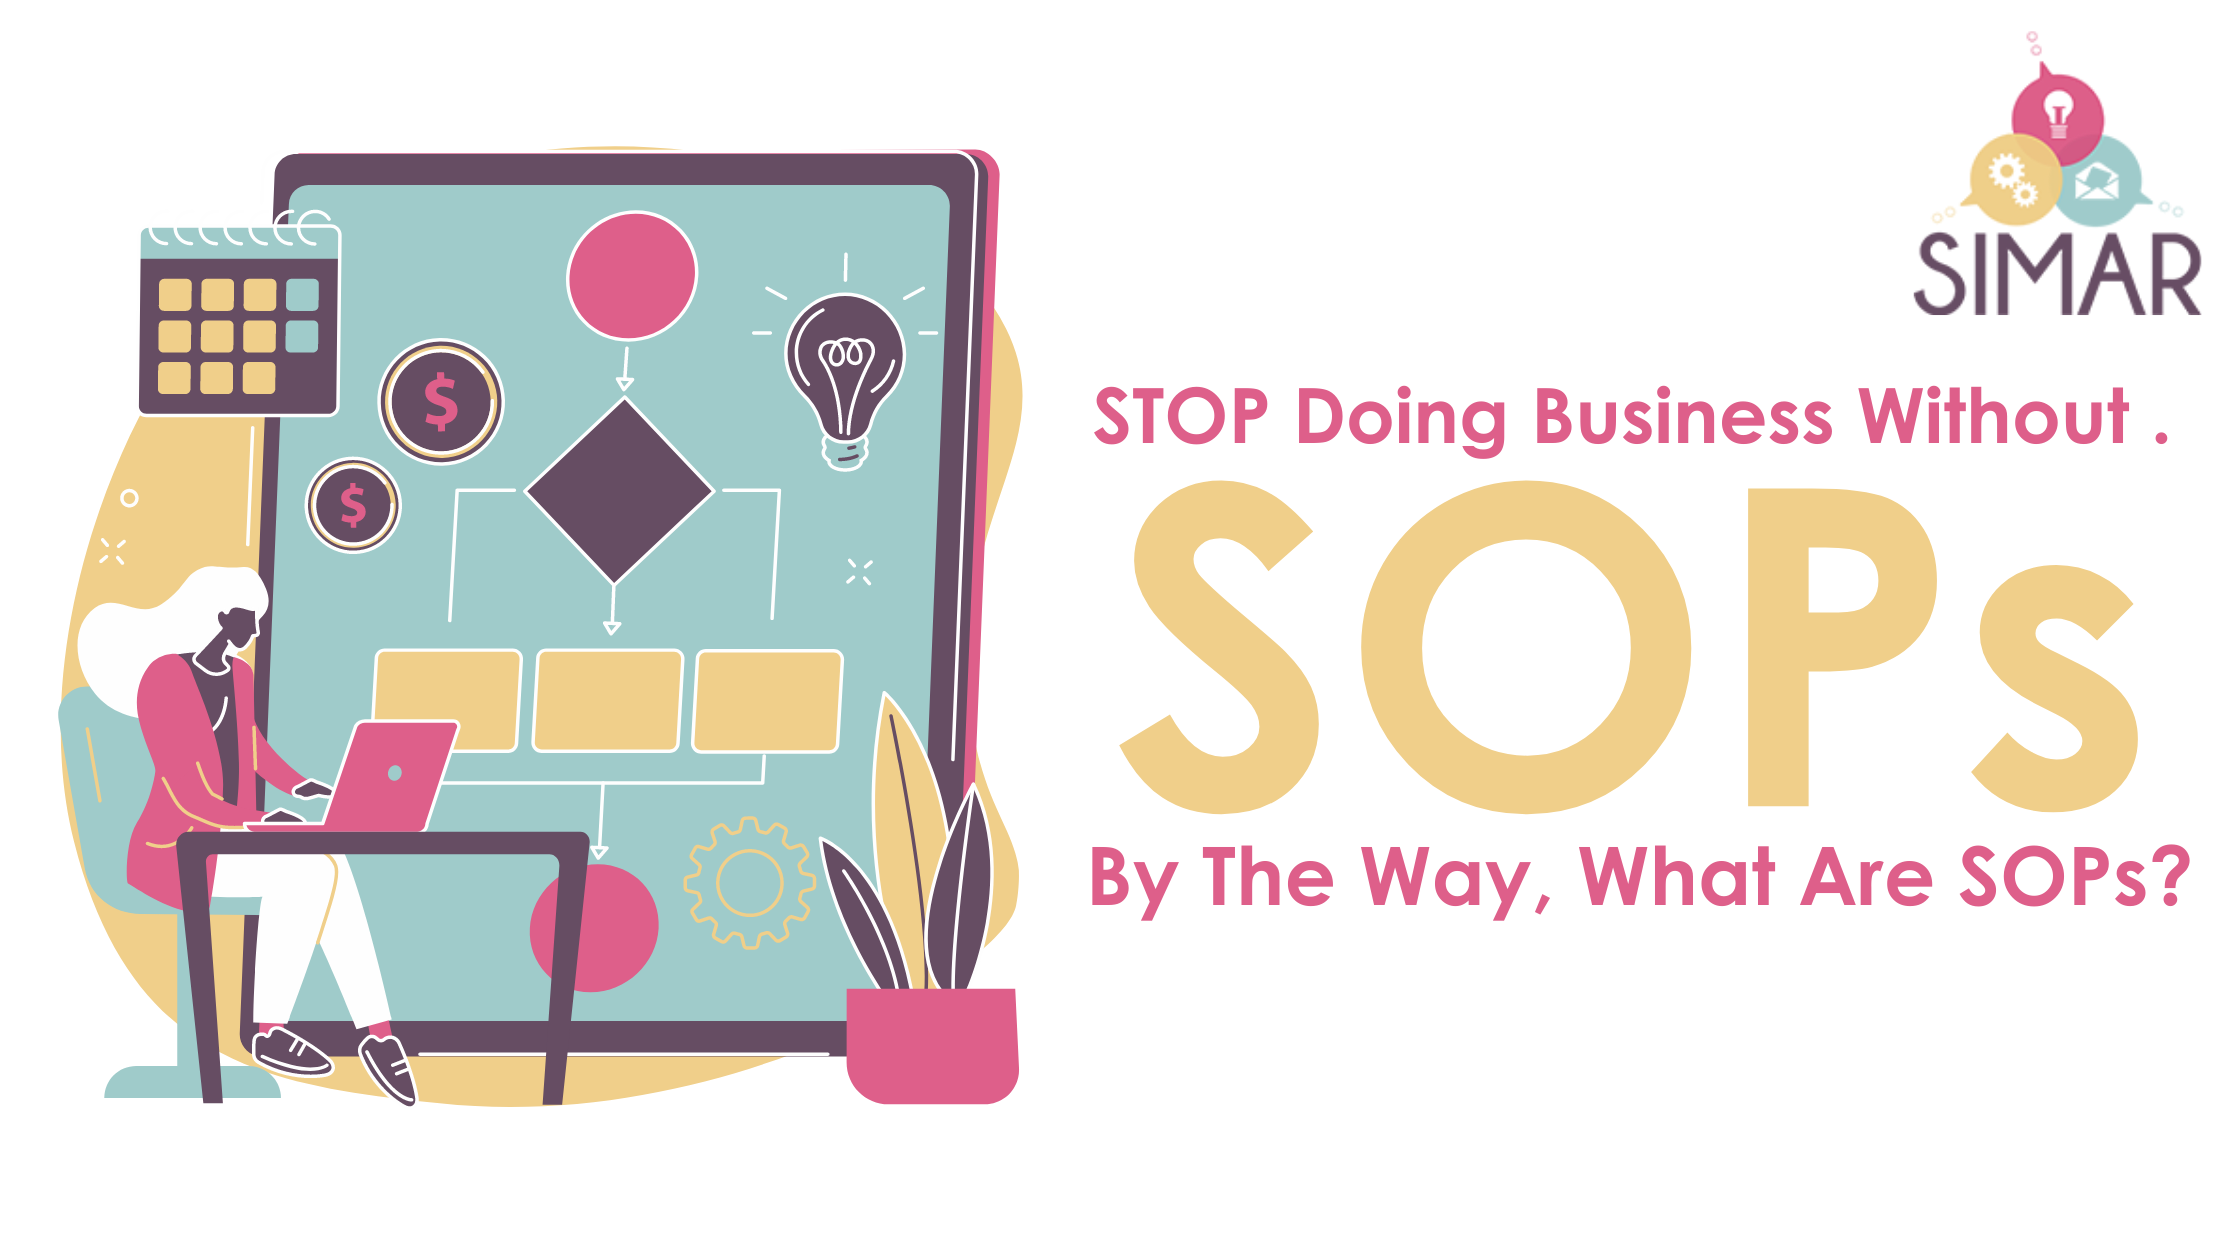 STOP Doing Business Without SOPs. By The Way, What Are SOPs?